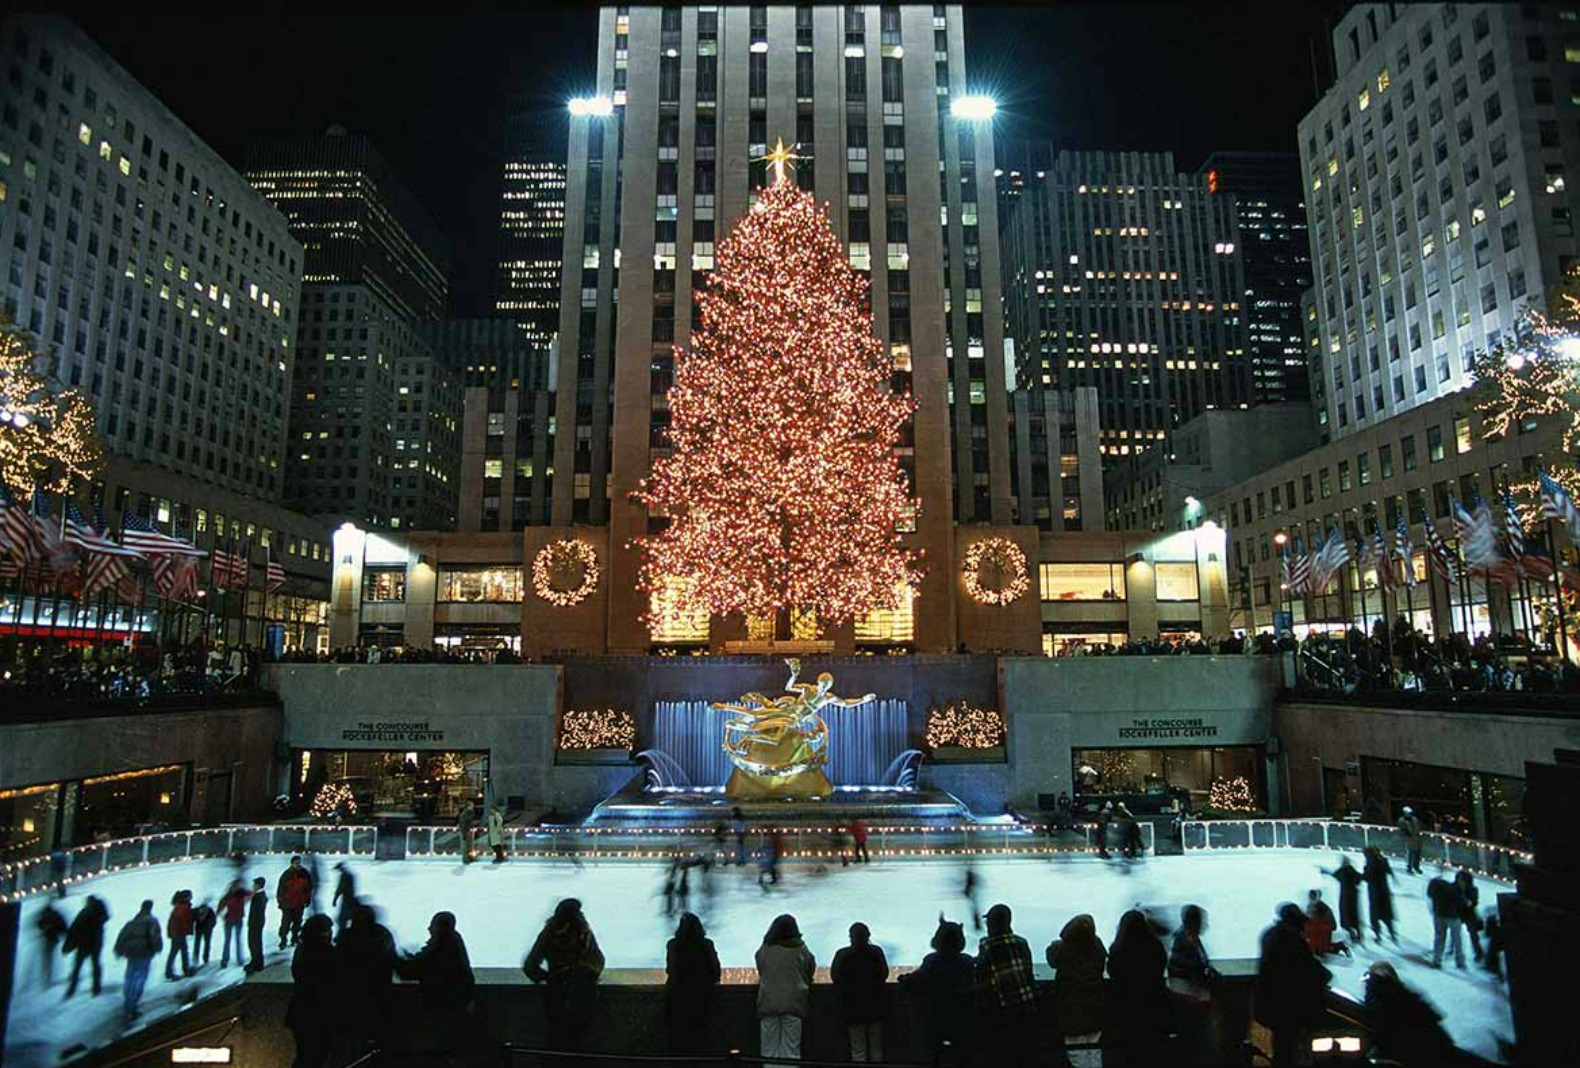 Rockefeller Center Christmas tree will be recycled as lumber for Habitat for Humanity homes